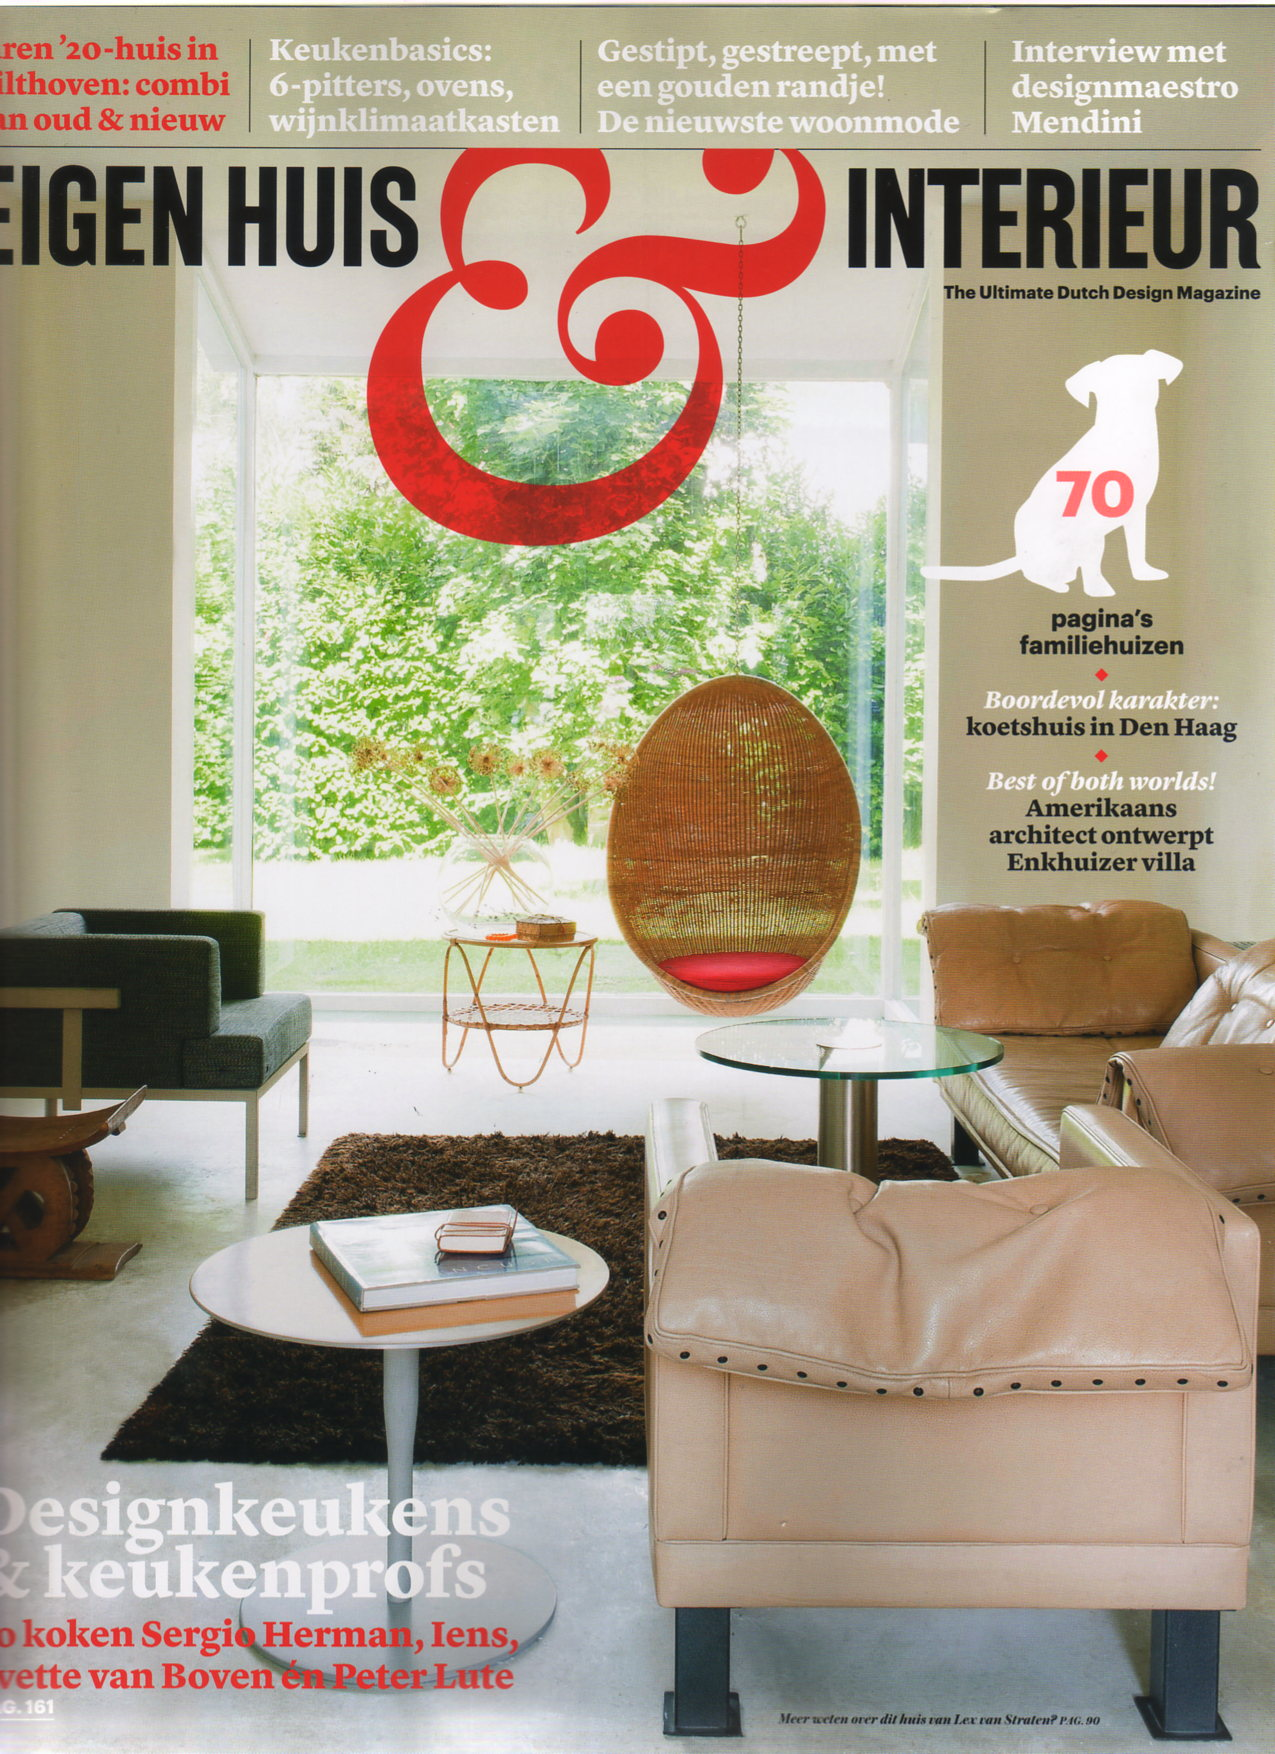 Eigen huis interieur features opposites attract melvin for Abonnement eigen huis en interieur